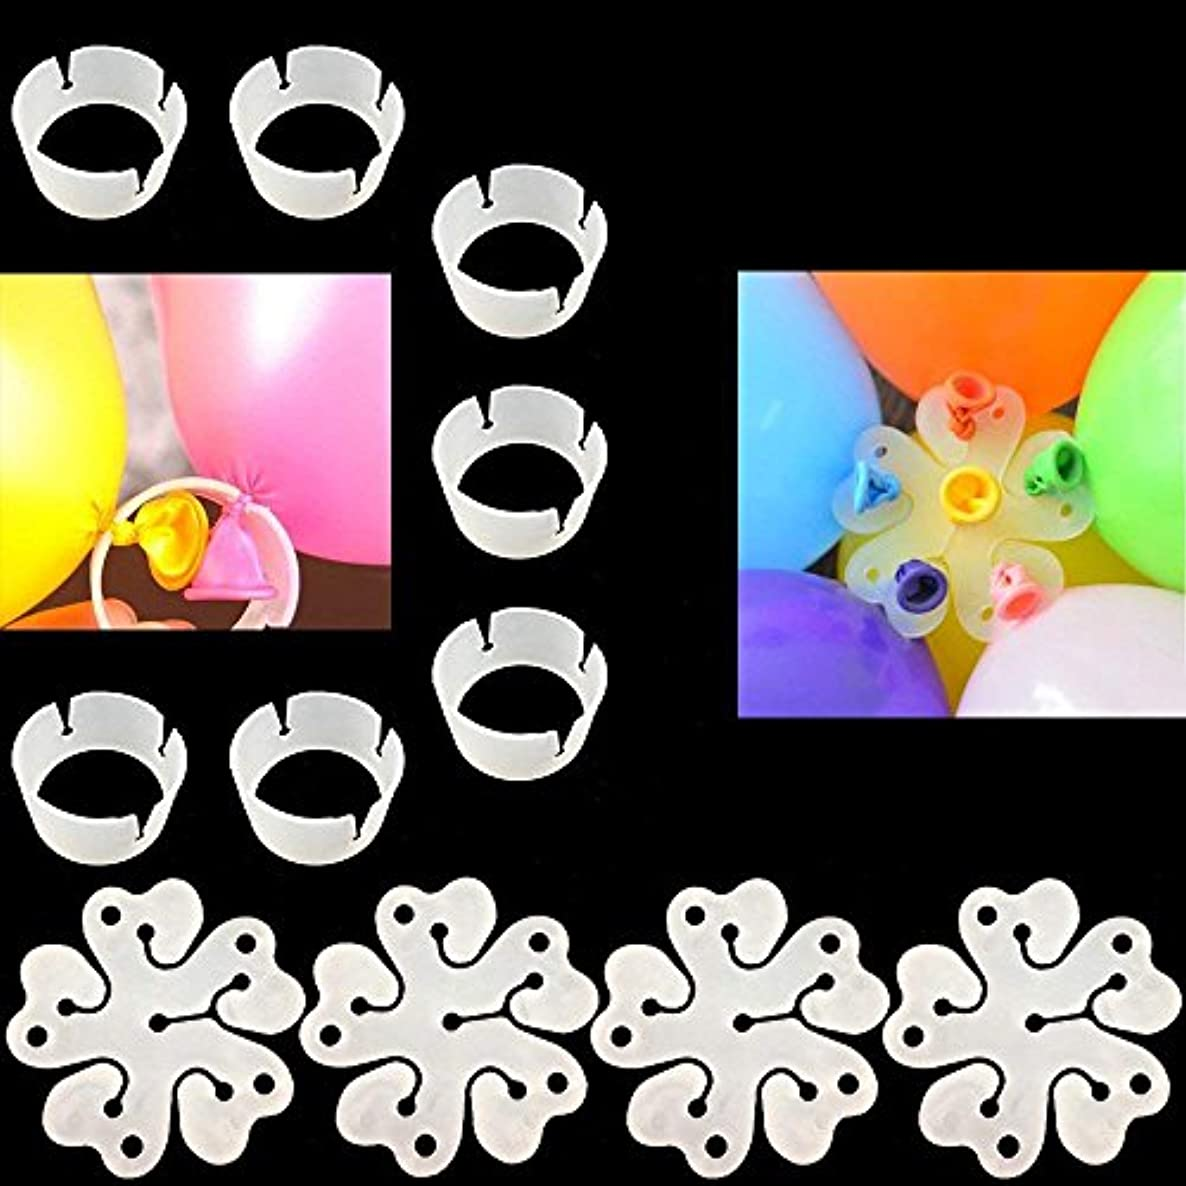 CSPRING 100PCS Decor Clear Balloon Arch Clips and Flower Shaped Balloon Clips for Wedding Party